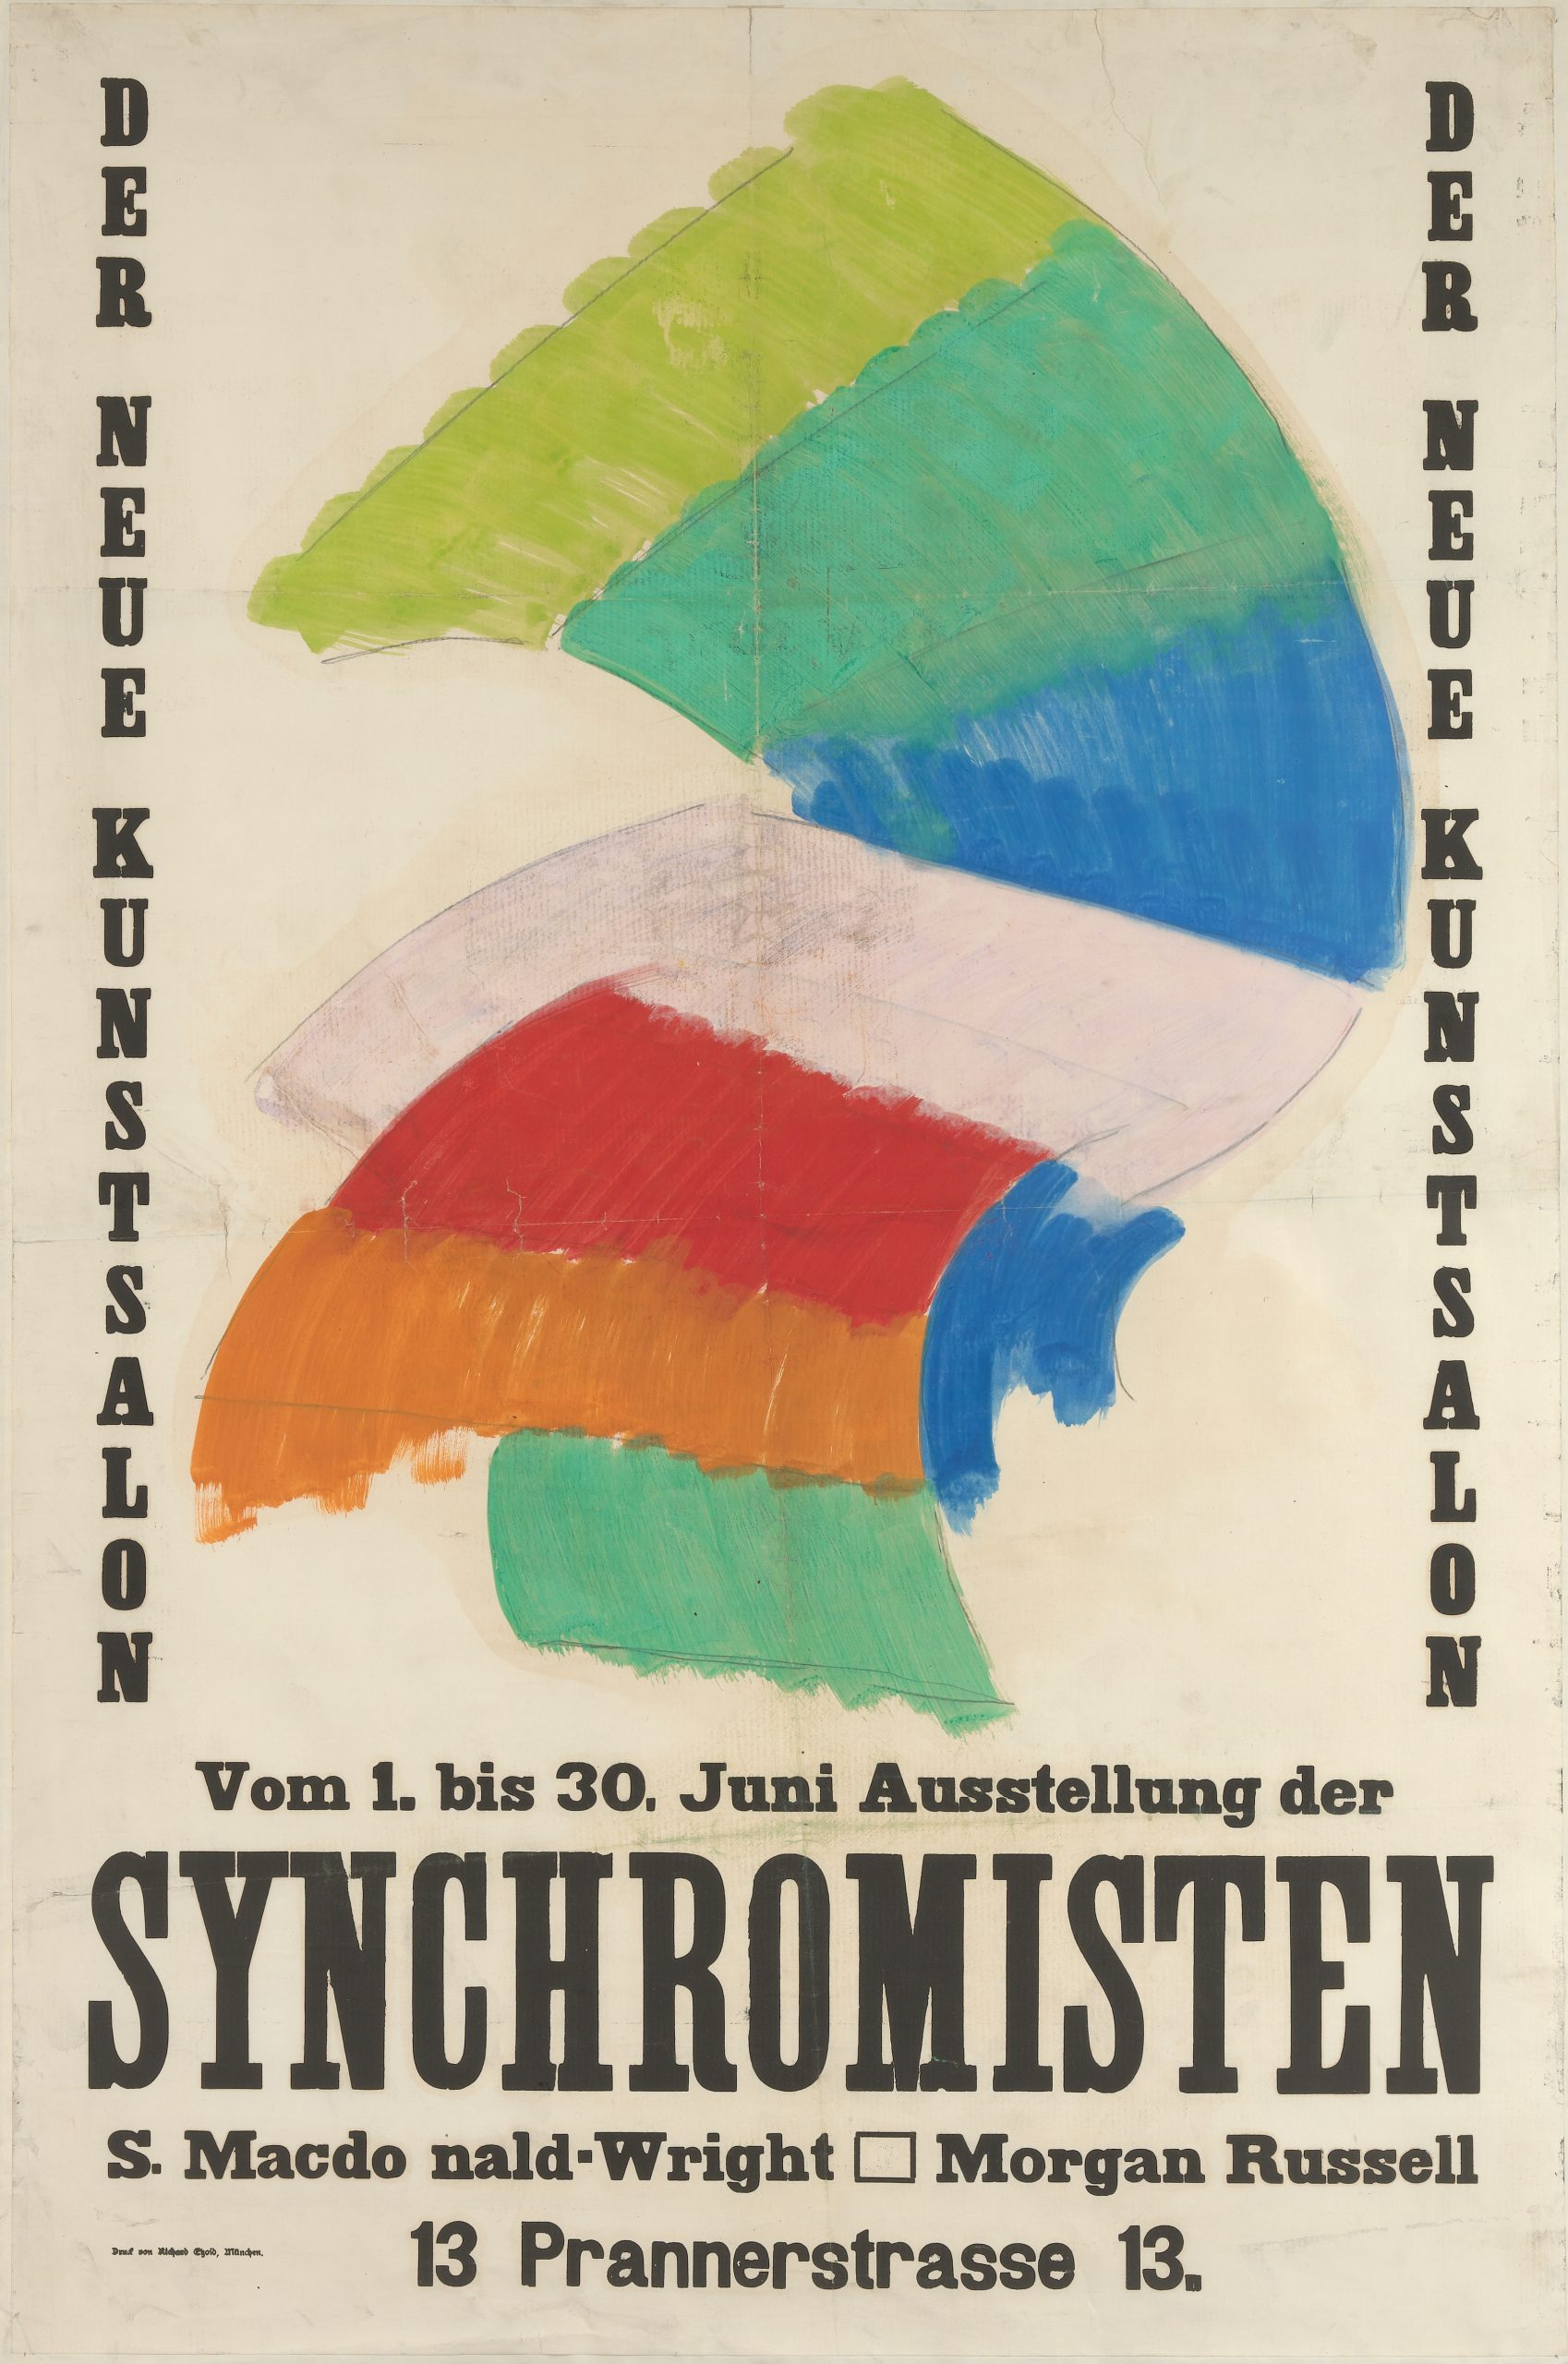 A German poster promoting the artists' exhibition with a wave of striped color panels centered among the text.